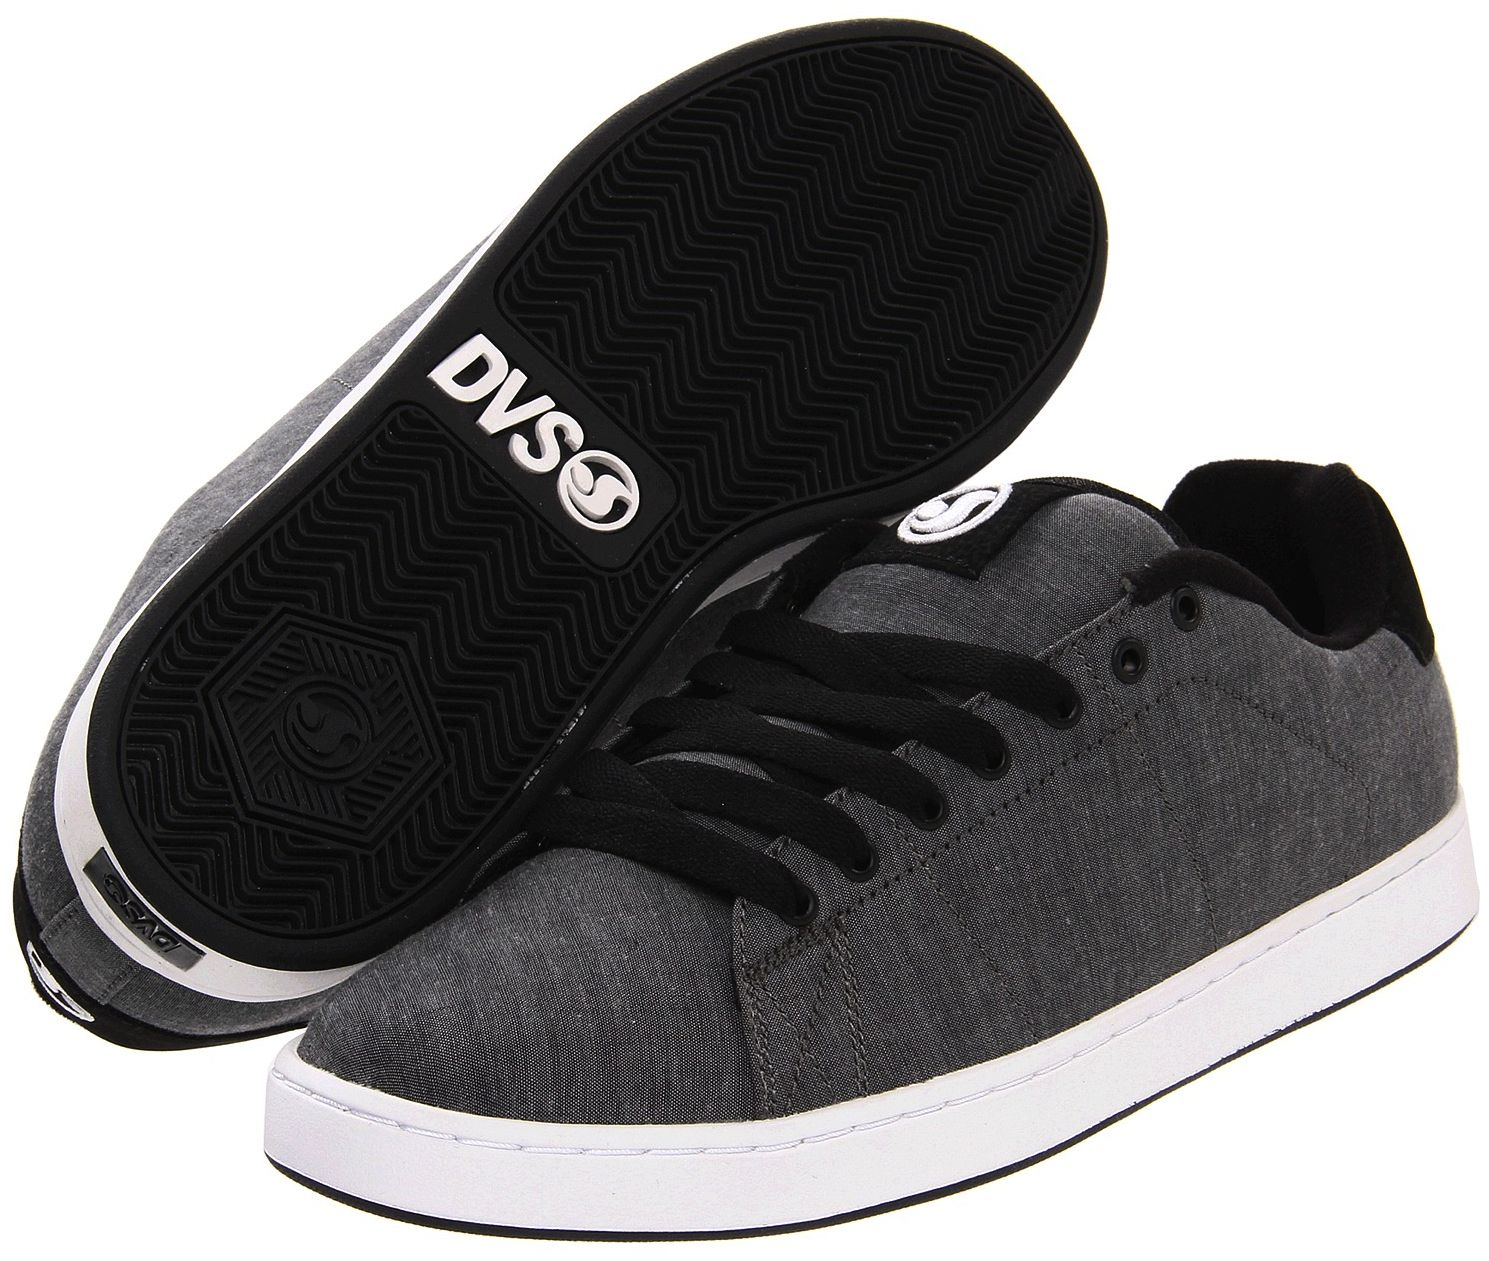 Vegan Skateboard shoes from DVS Gavin 2